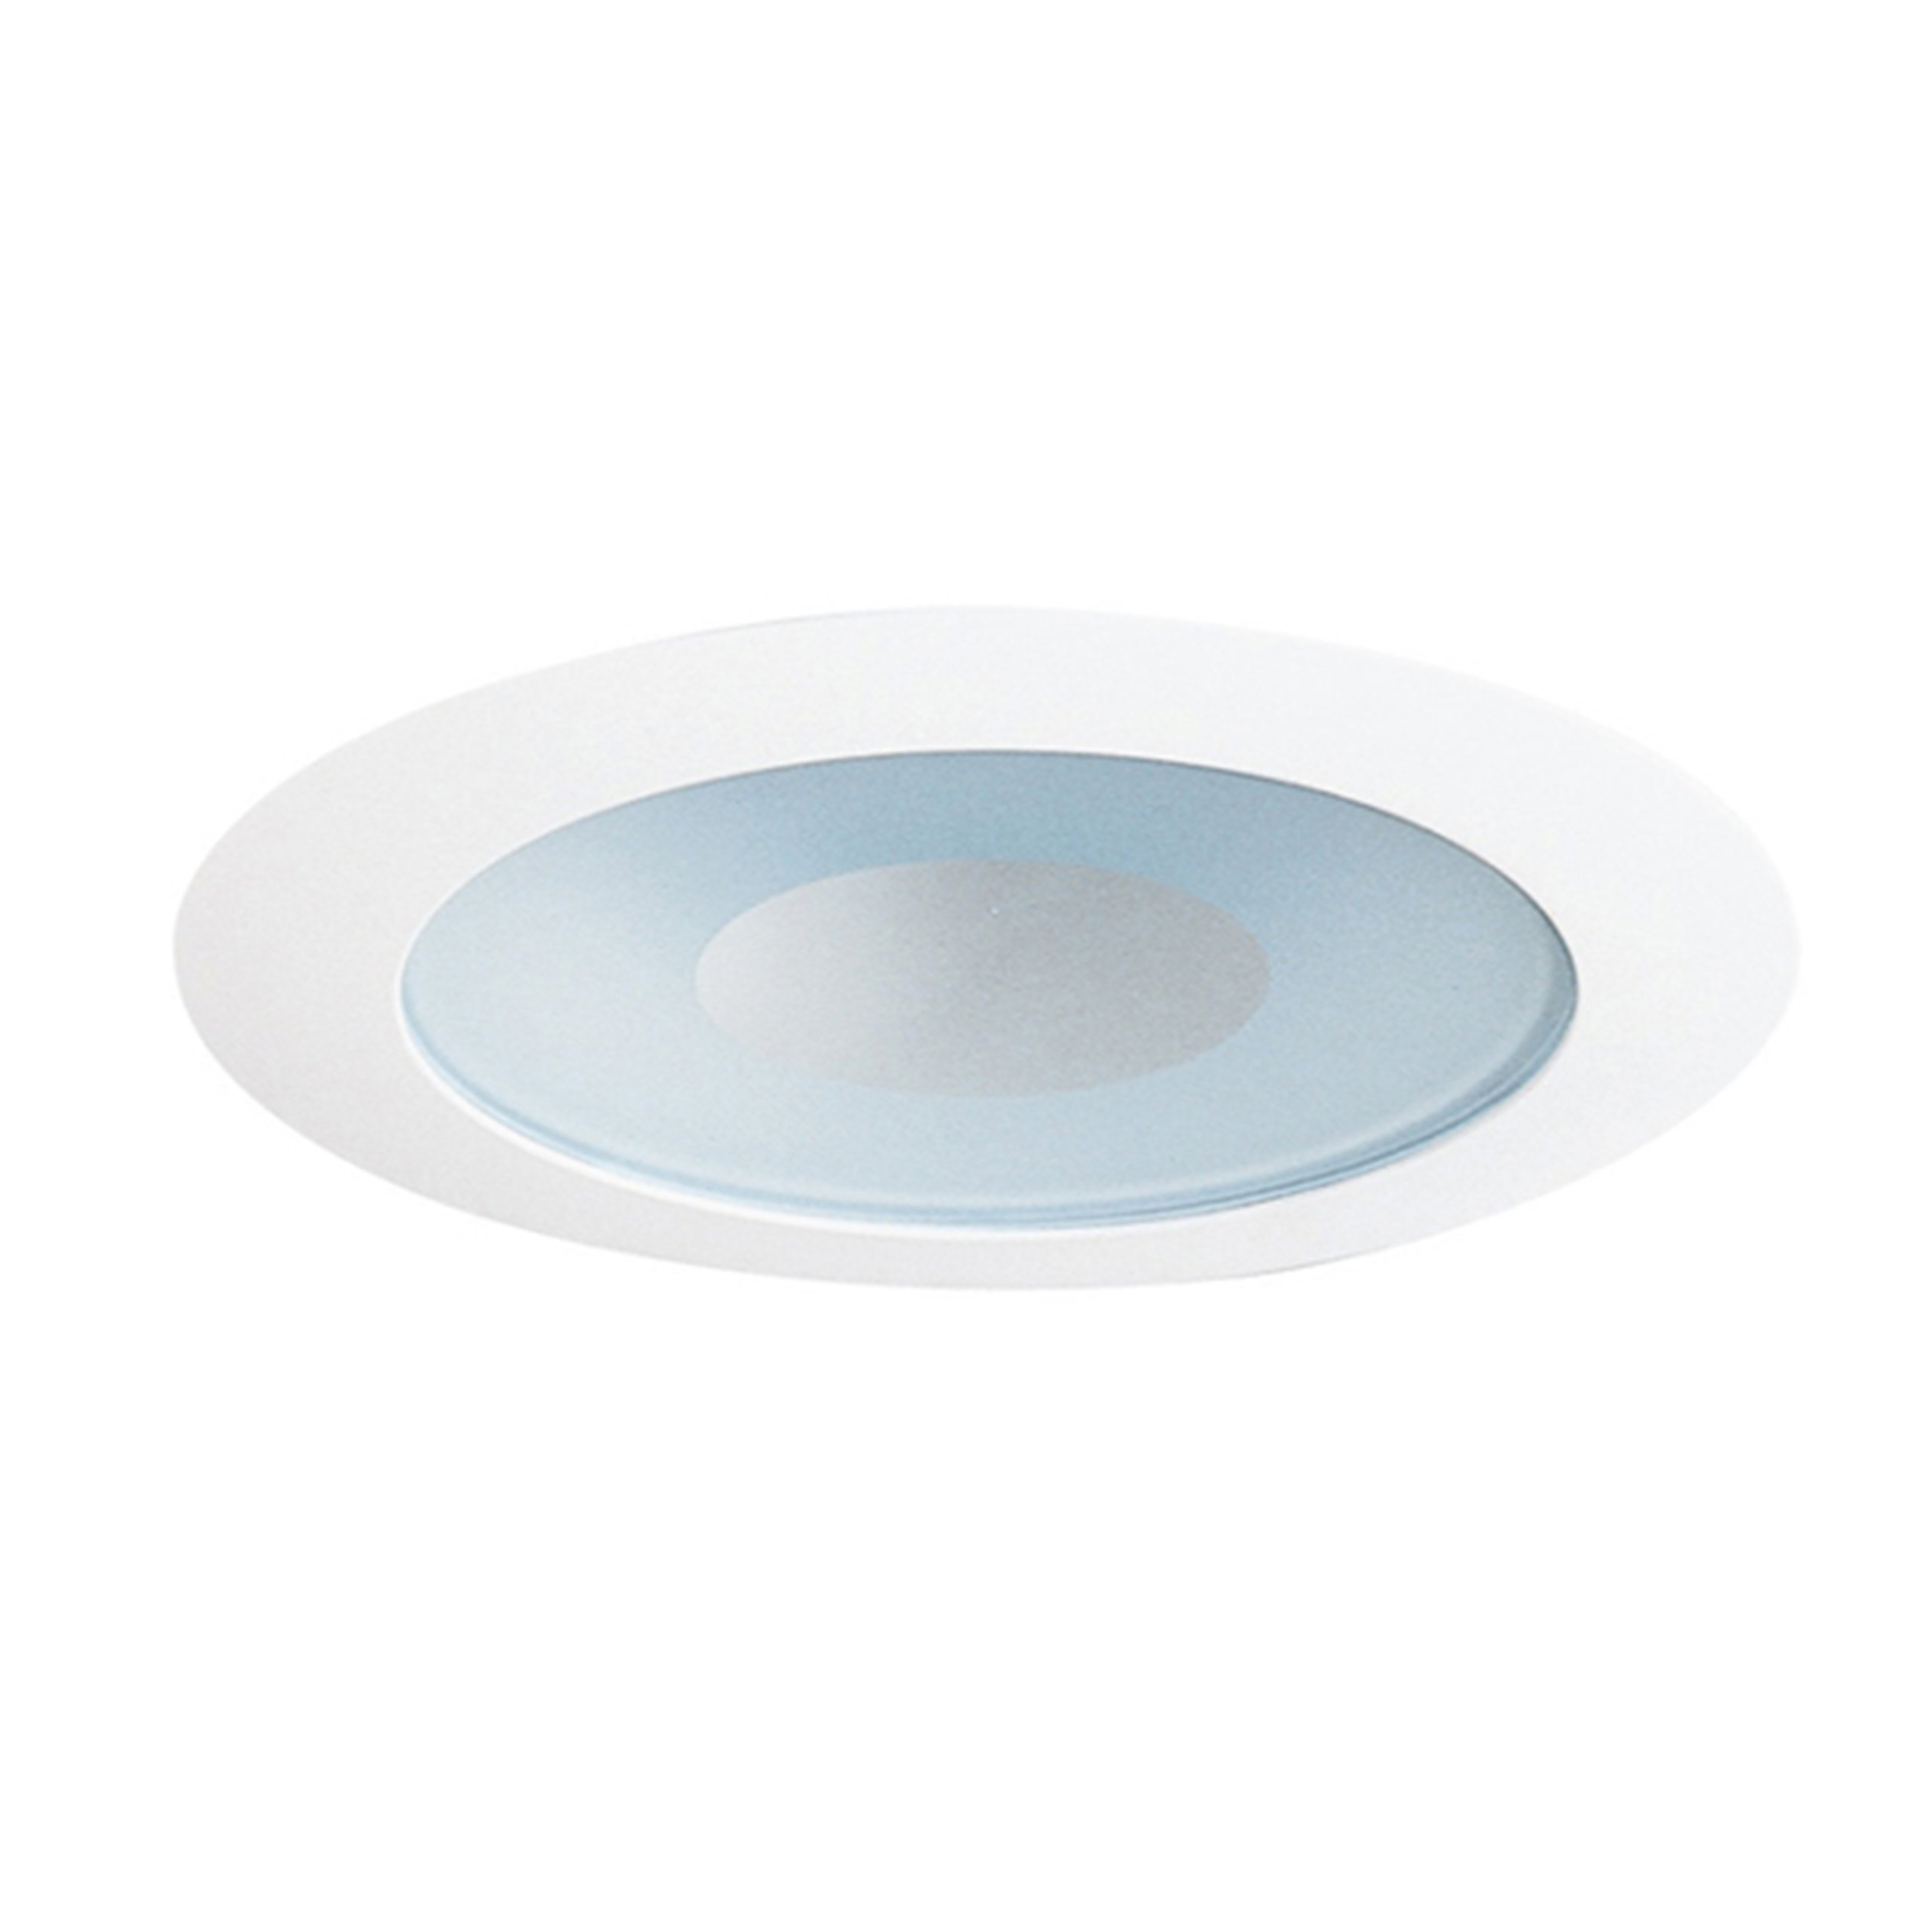 Juno Lighting 441W-WH Lensed 4IN LV Shower Trim, Perimeter Frosted Lens with White Trim Ring